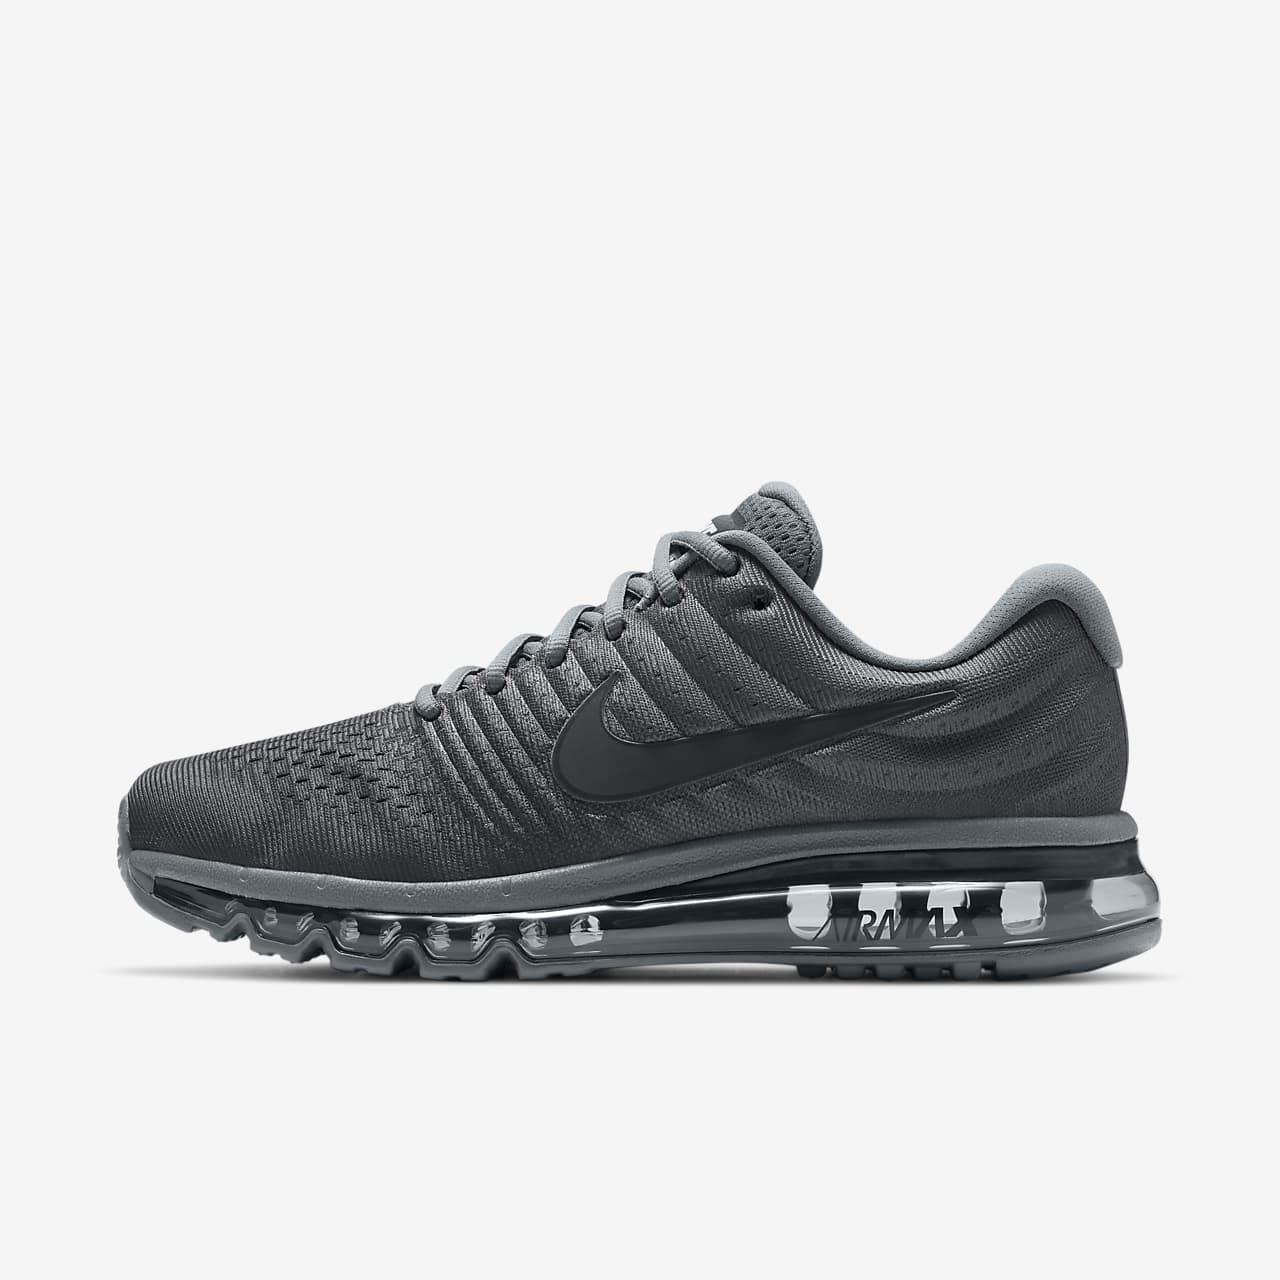 6aebf10f2fc Nike Air Max 2017 Men s Shoe. Nike.com